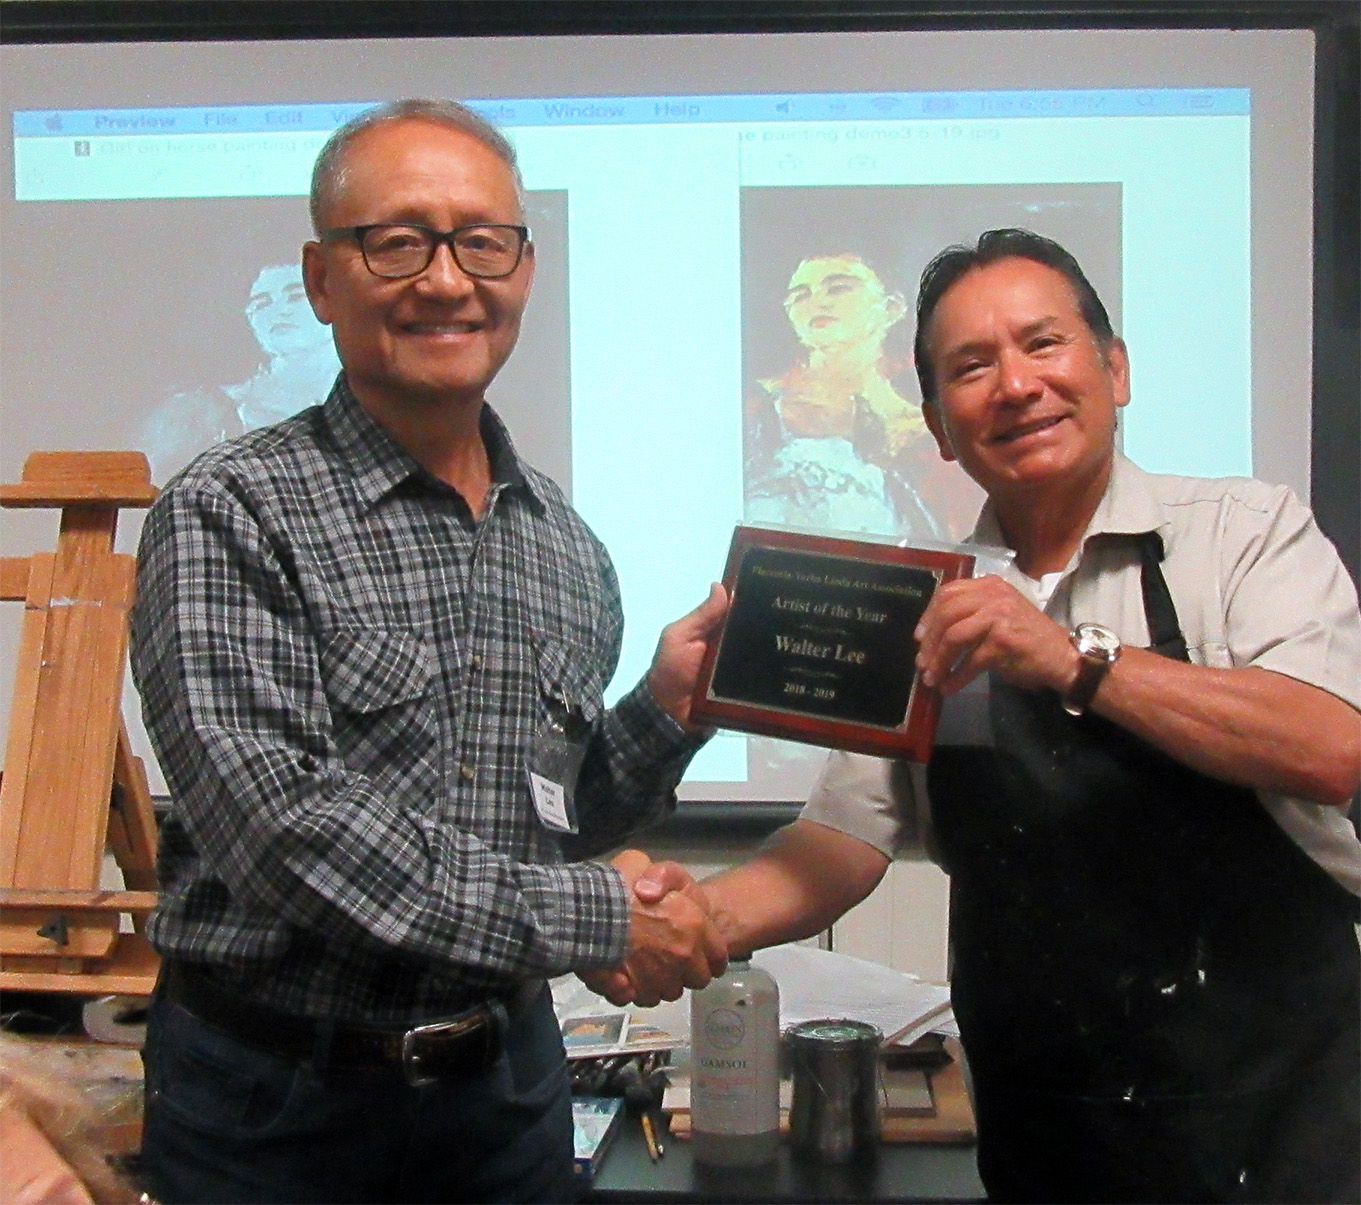 Walter Lee (left) has received the plaque from Armando Cepeda, President of the Association.